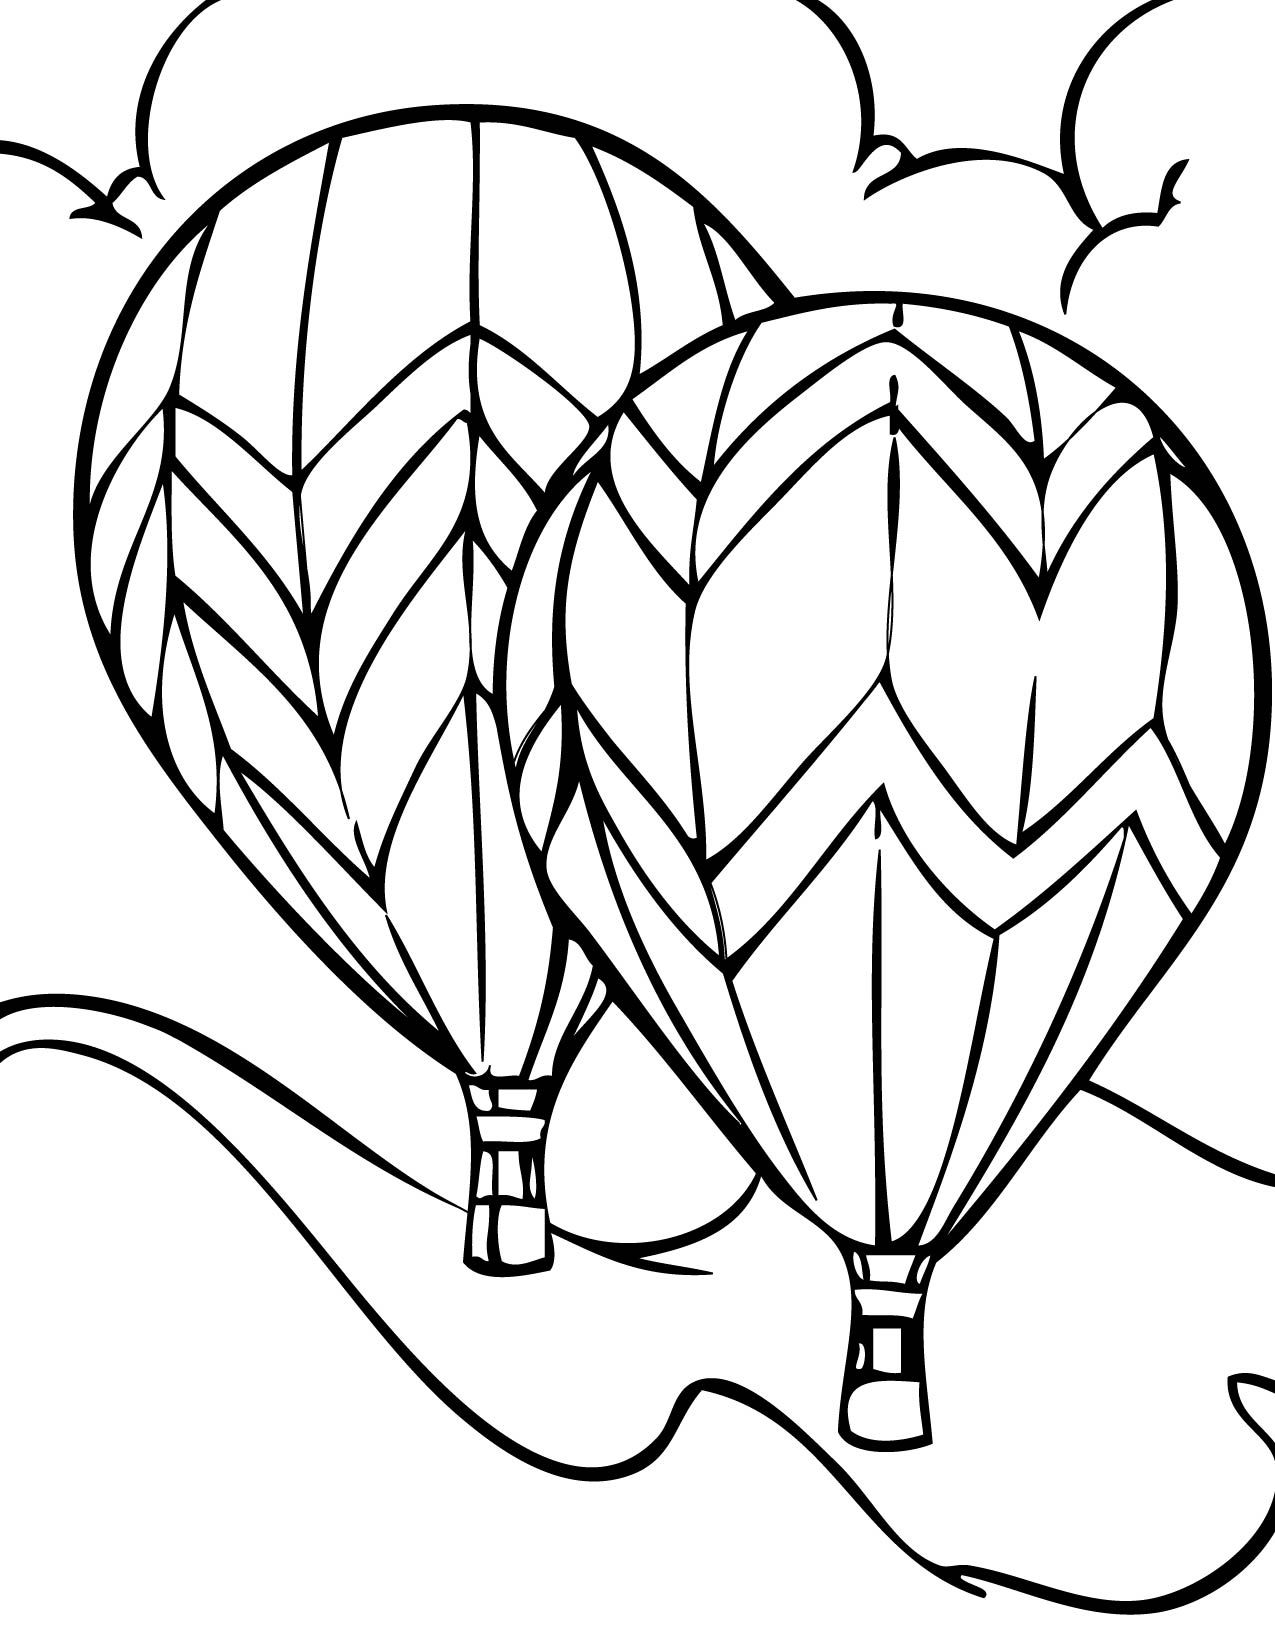 Balloon clipart coloring book banner black and white stock Free Printable Hot Air Balloon Coloring Pages For Kids | Free ... banner black and white stock